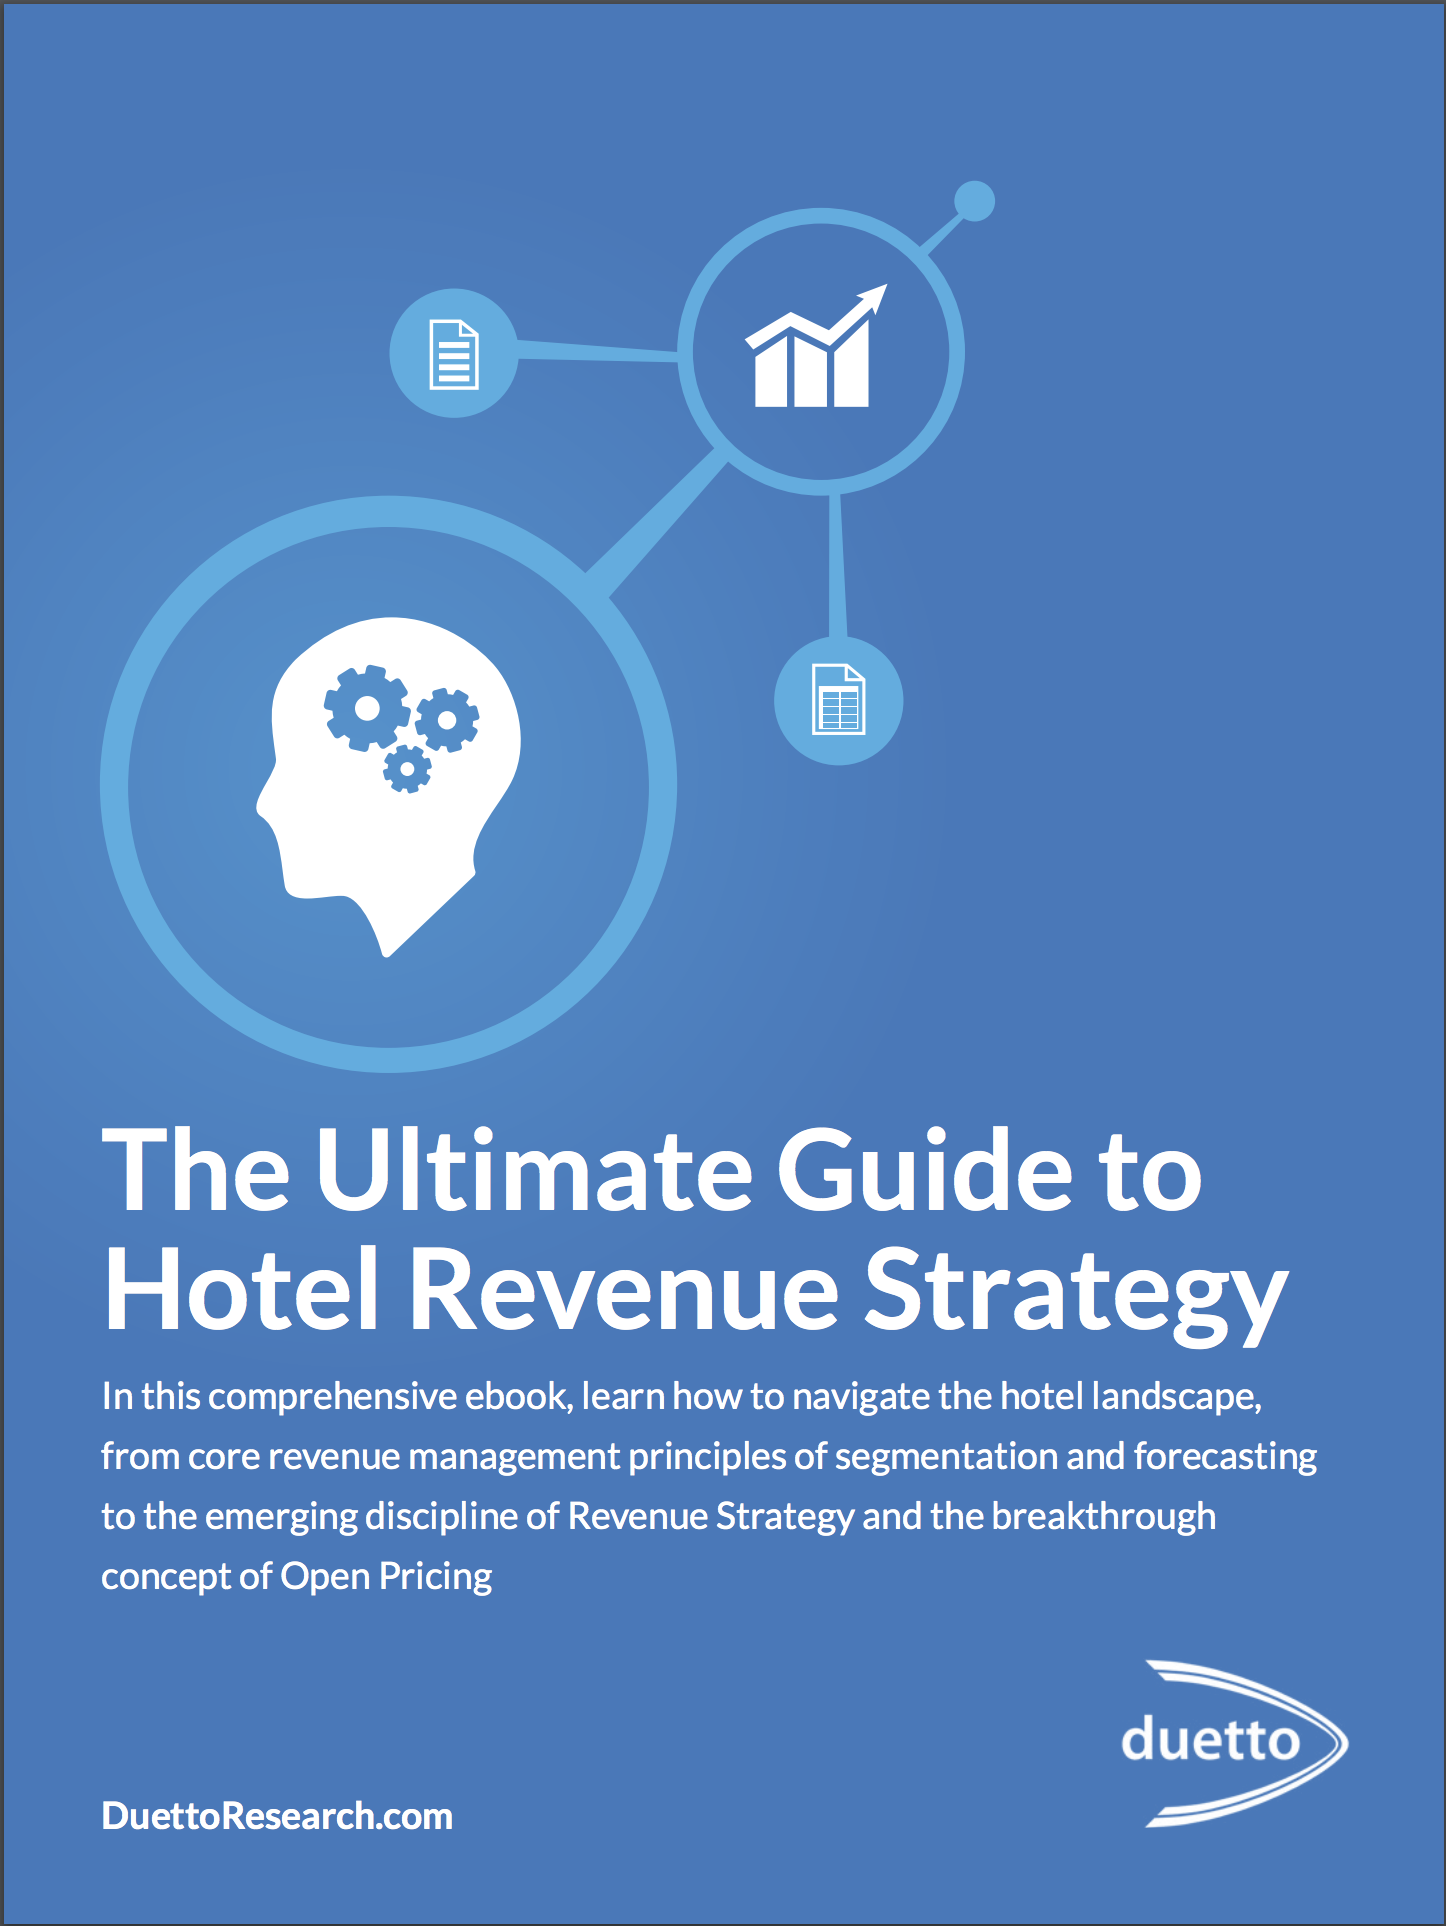 The Ultimate Guide to Hotel Revenue Strategy - Duetto